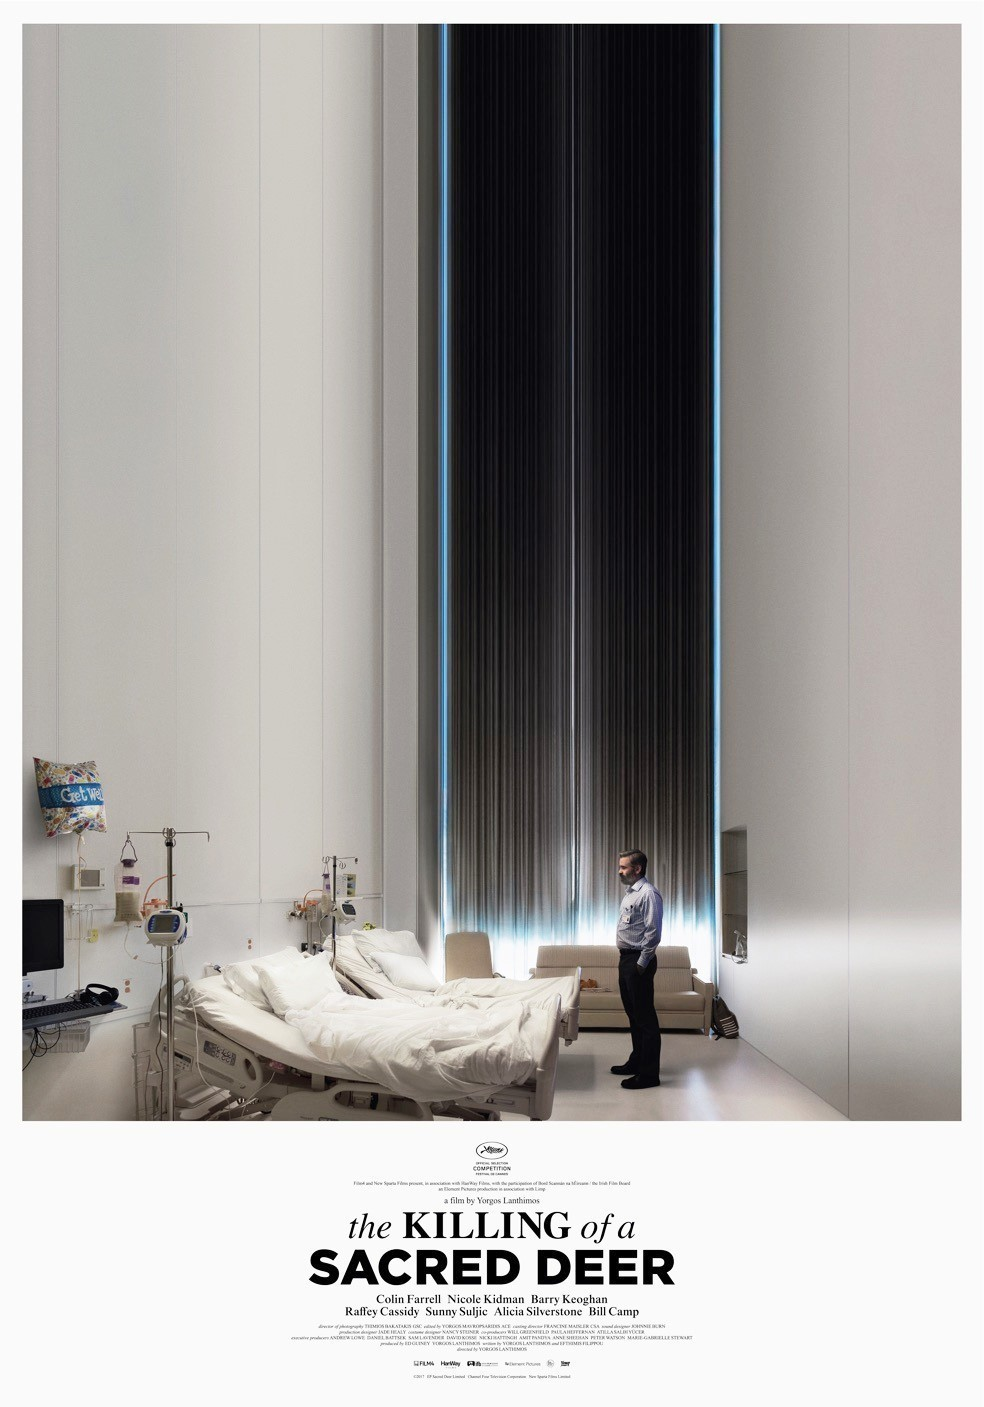 Poster of A24's The Killing of a Sacred Deer (2017)